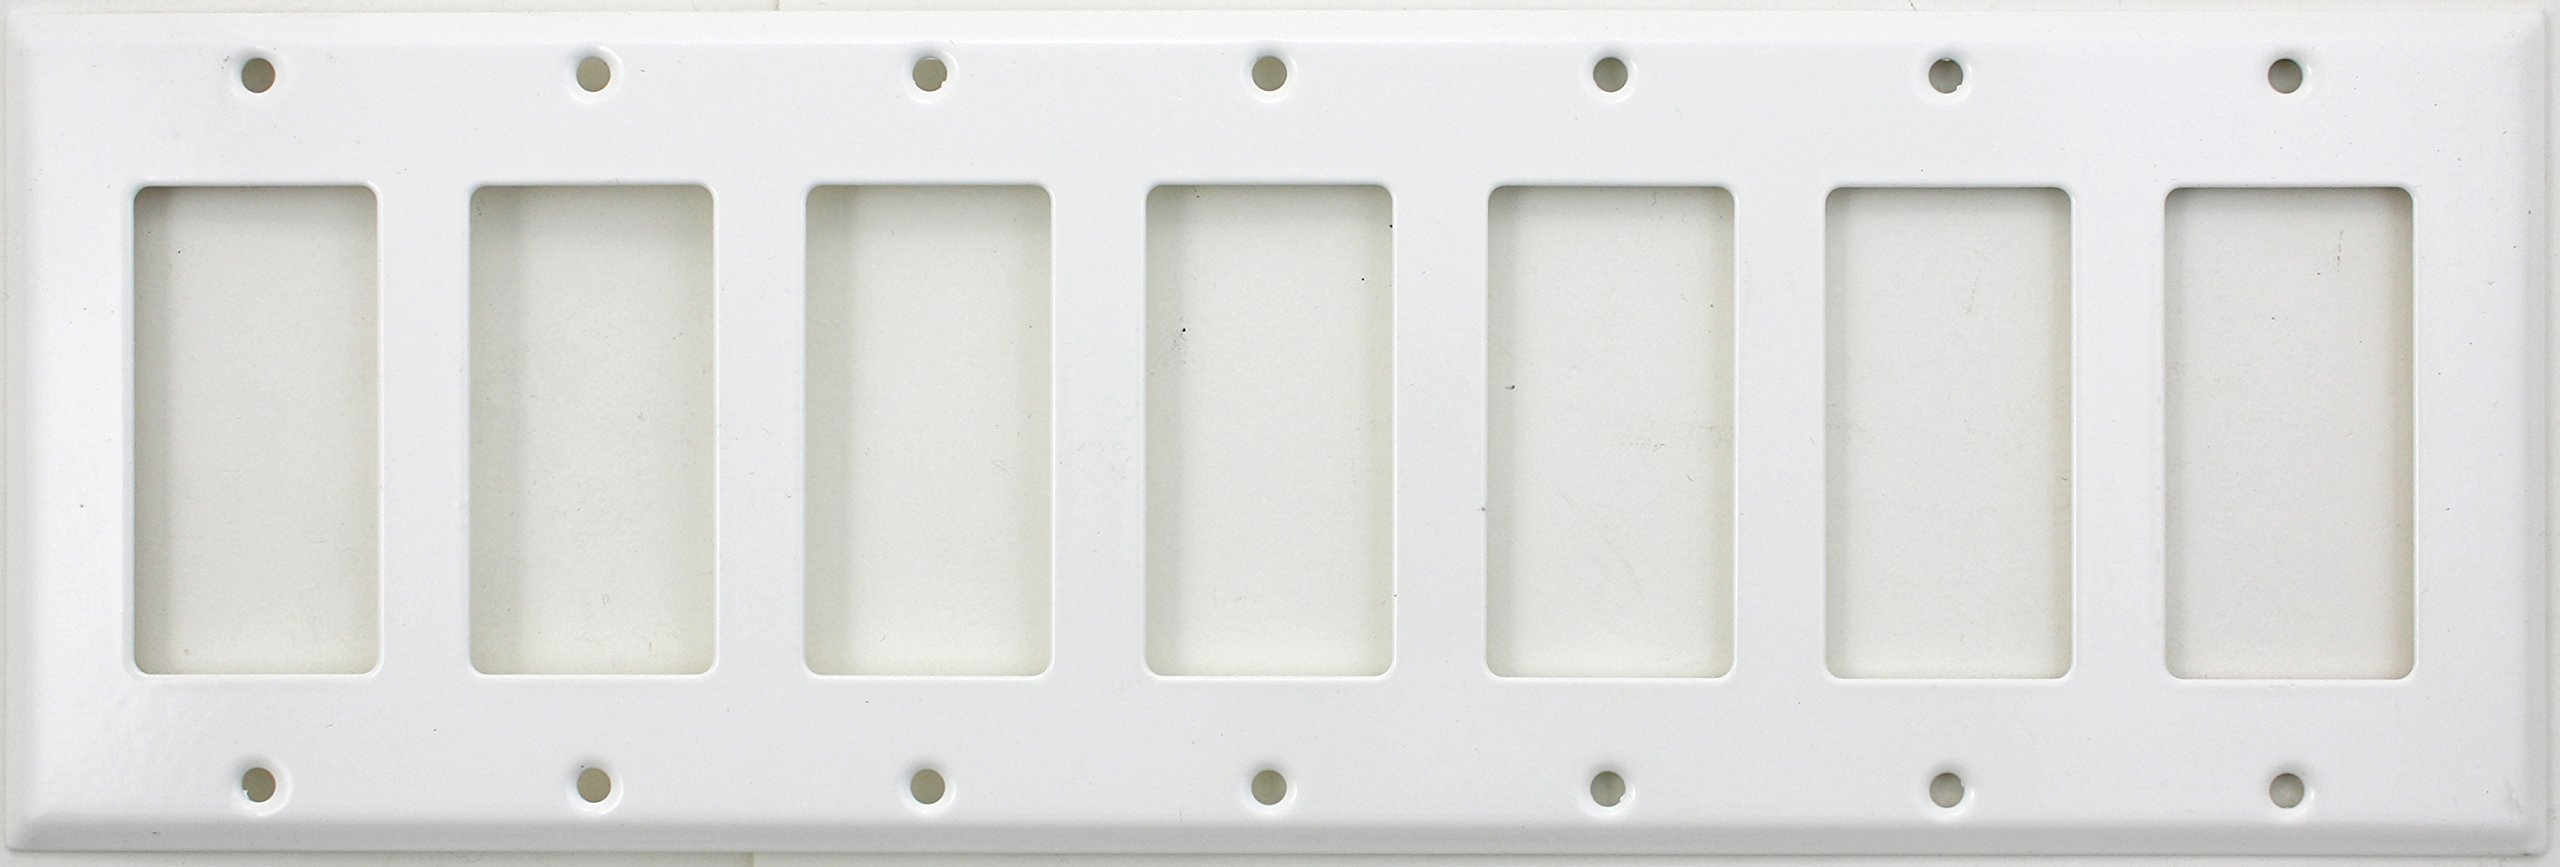 Smooth White Seven Gang Wall Plate - Seven GFI/Rocker Opening